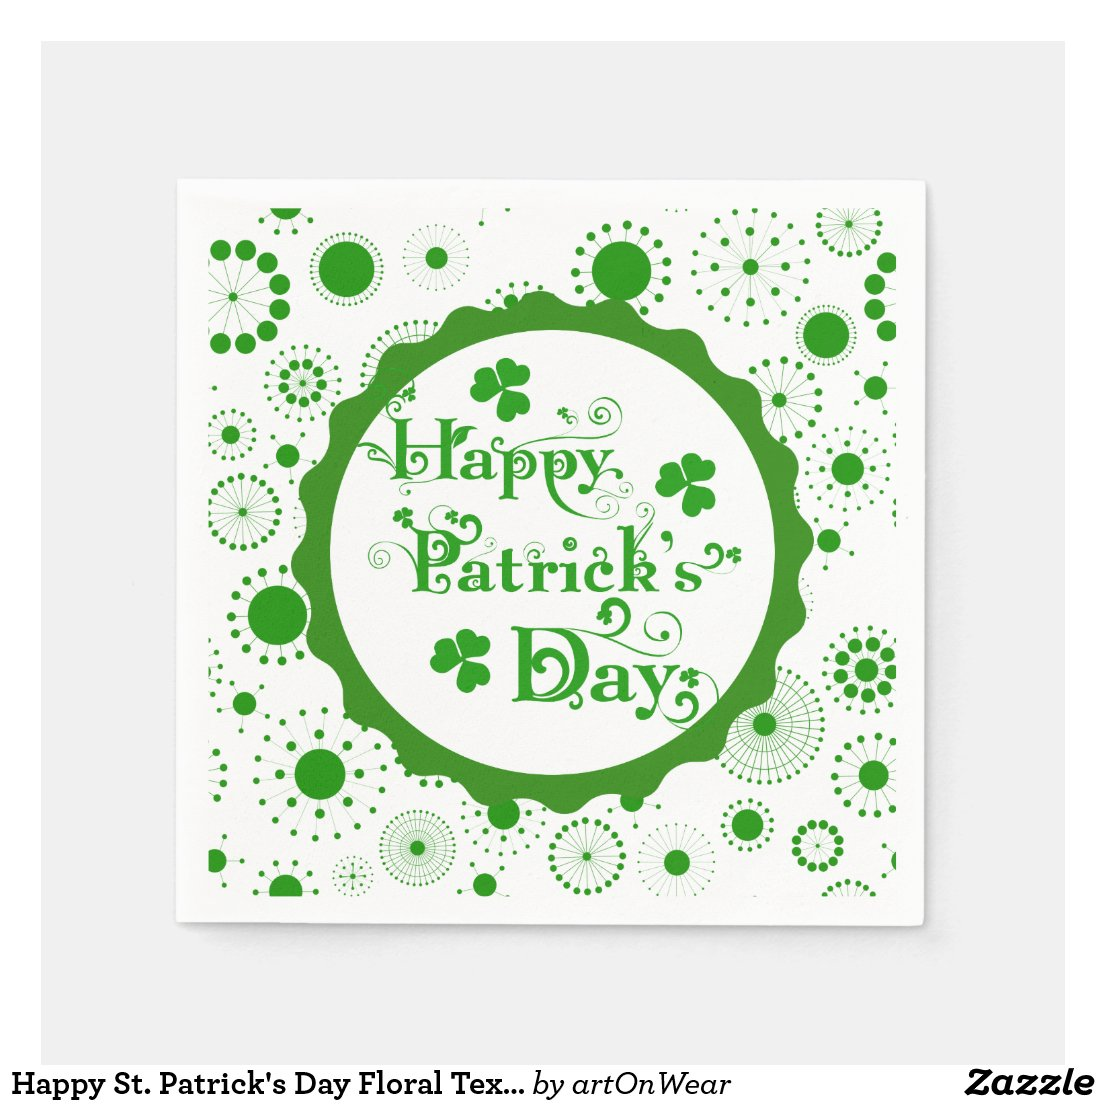 Happy St. Patrick's Day Floral Text Design